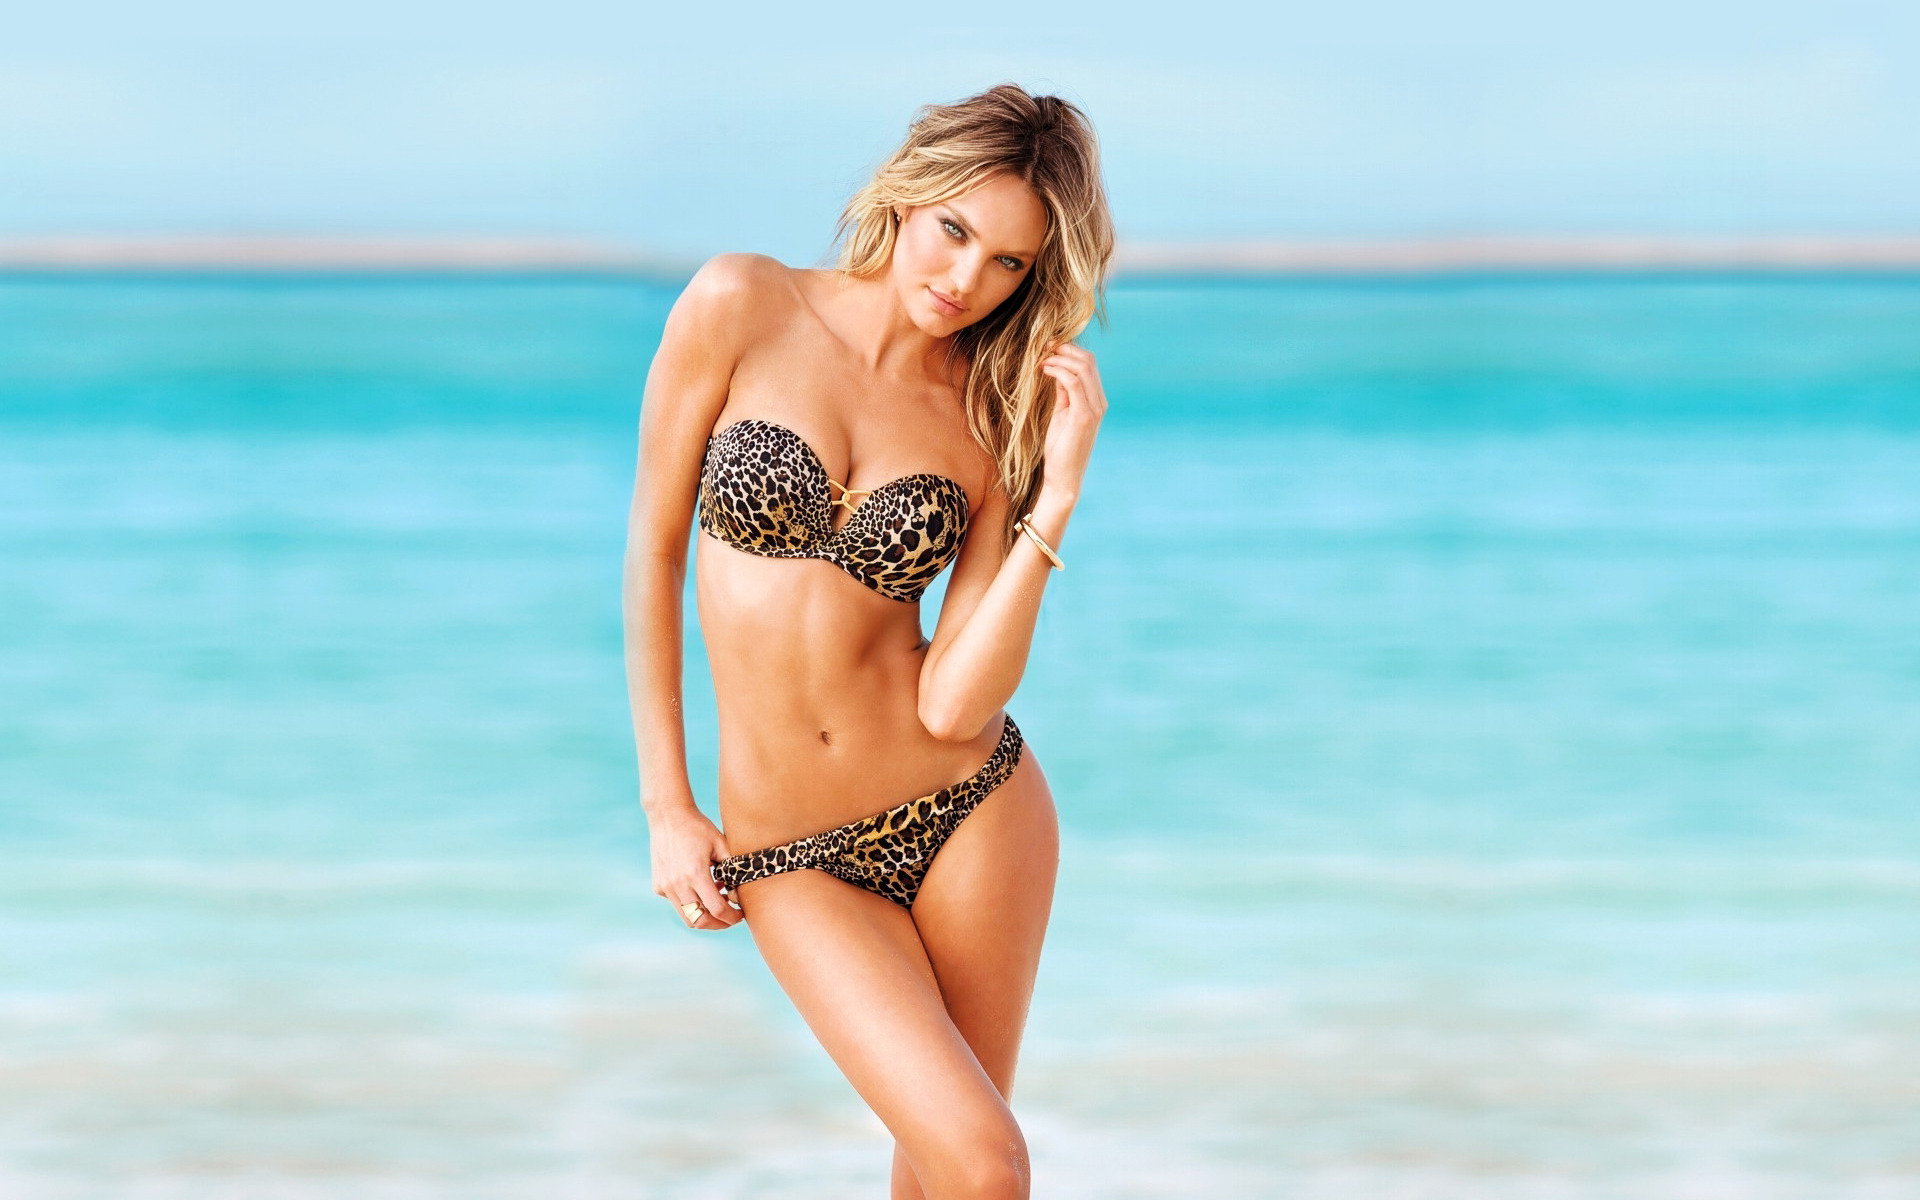 hot bikini model wallpapers